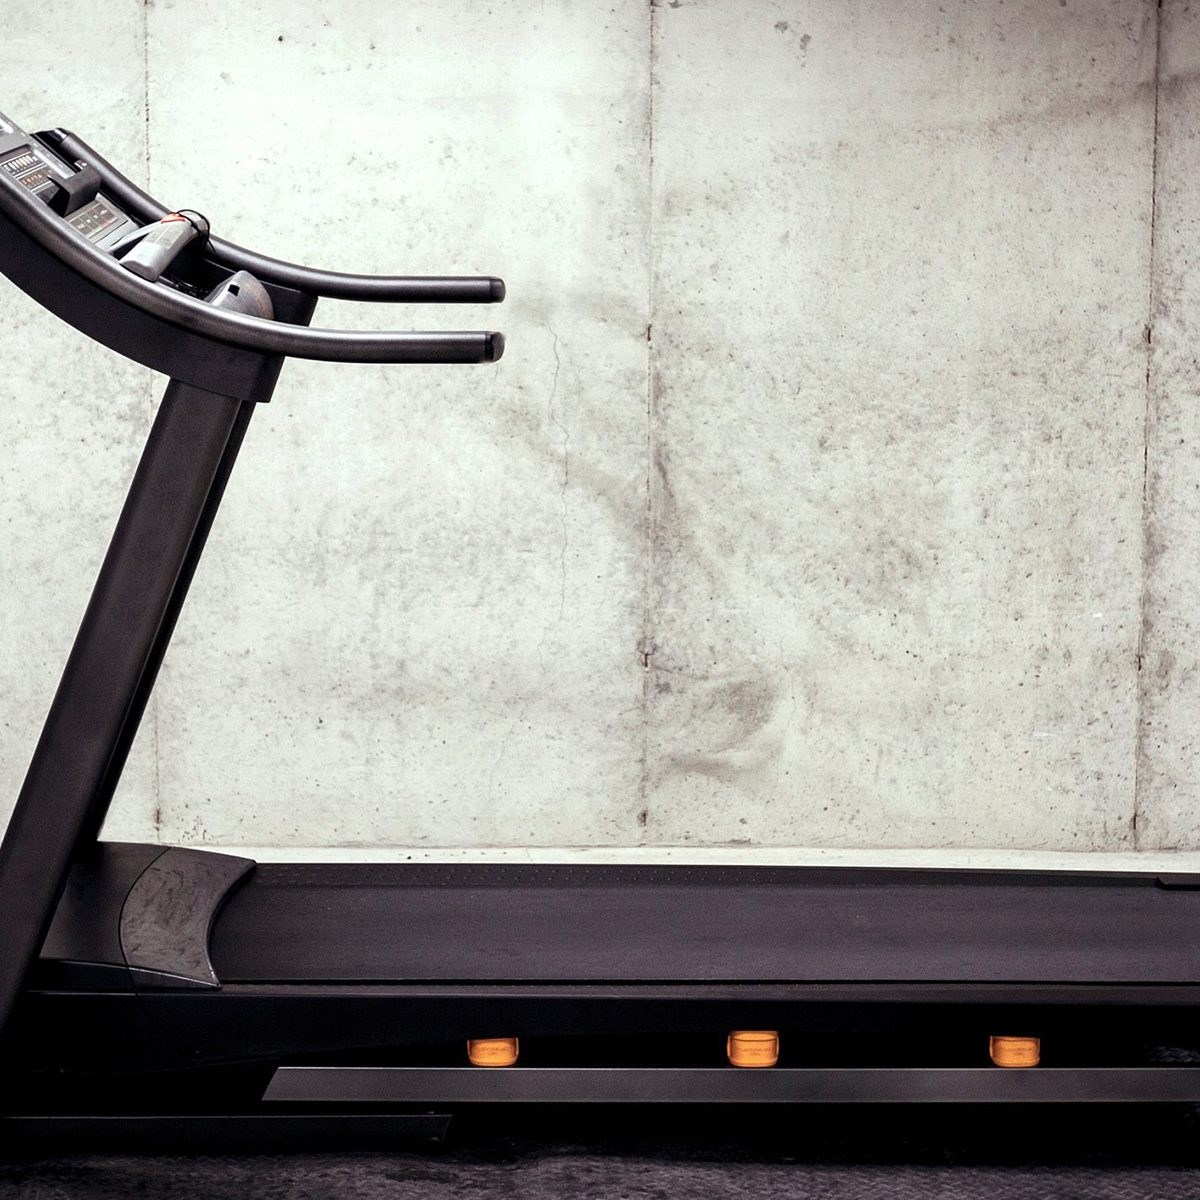 A treadmill sitting vacant just waiting for someone to run on it. The treadmill is sitting in a concrete basement.